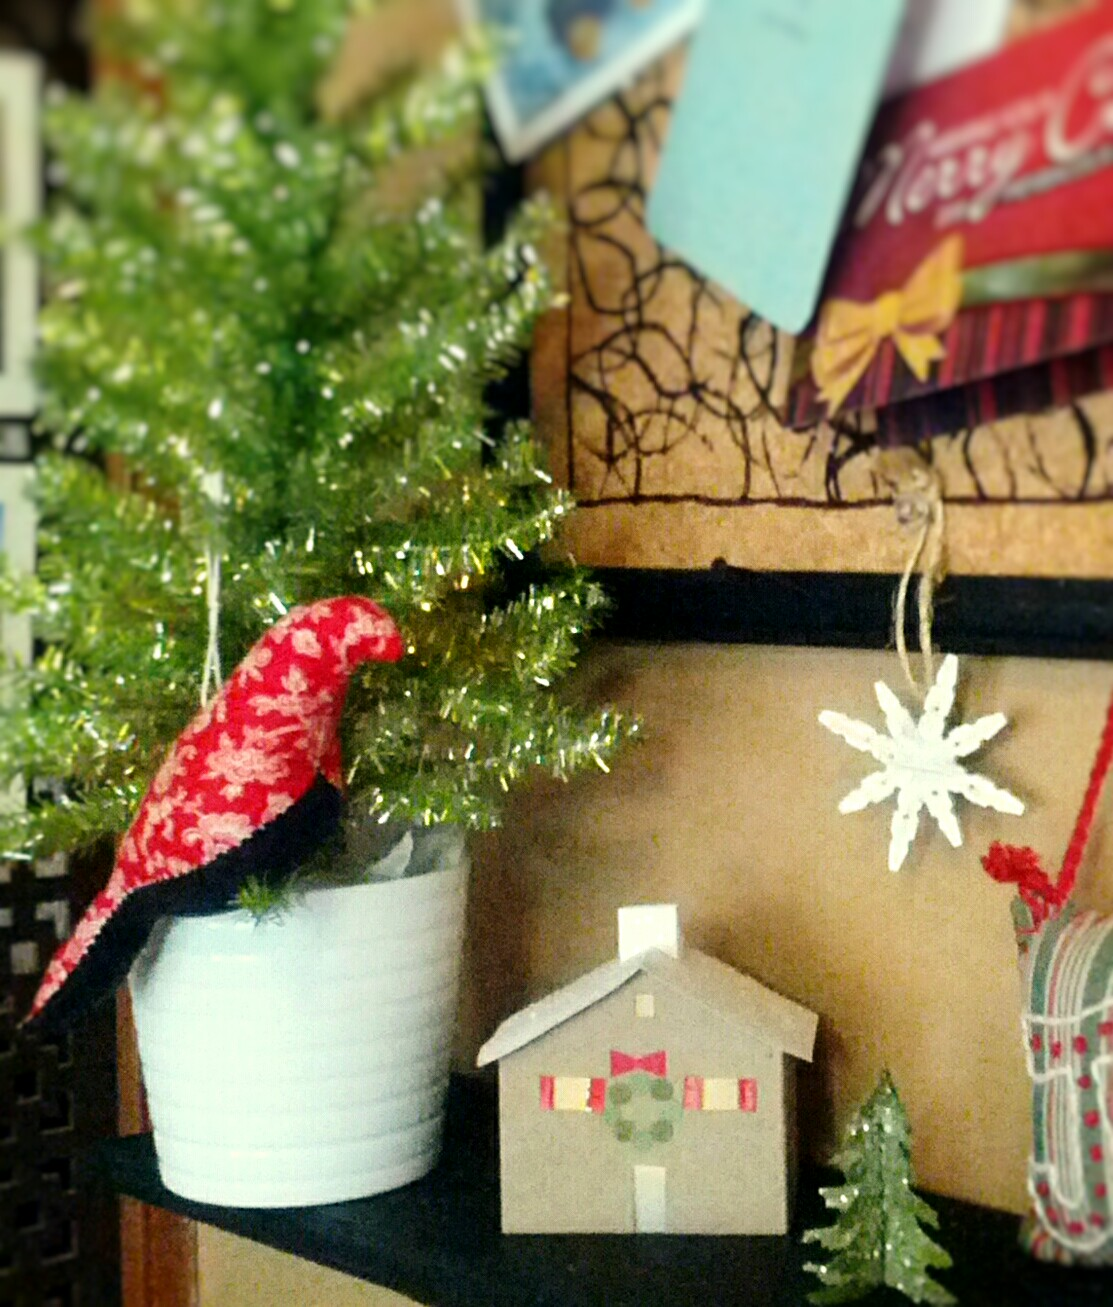 Cottage style Christmas mantel decor with a green tinsel tree in a white pot, mini lighted paper house , a red & black fabric bird, and a wood snowflake ornament. Rustic country style holiday decorating. By Shalom Schultz Designs.